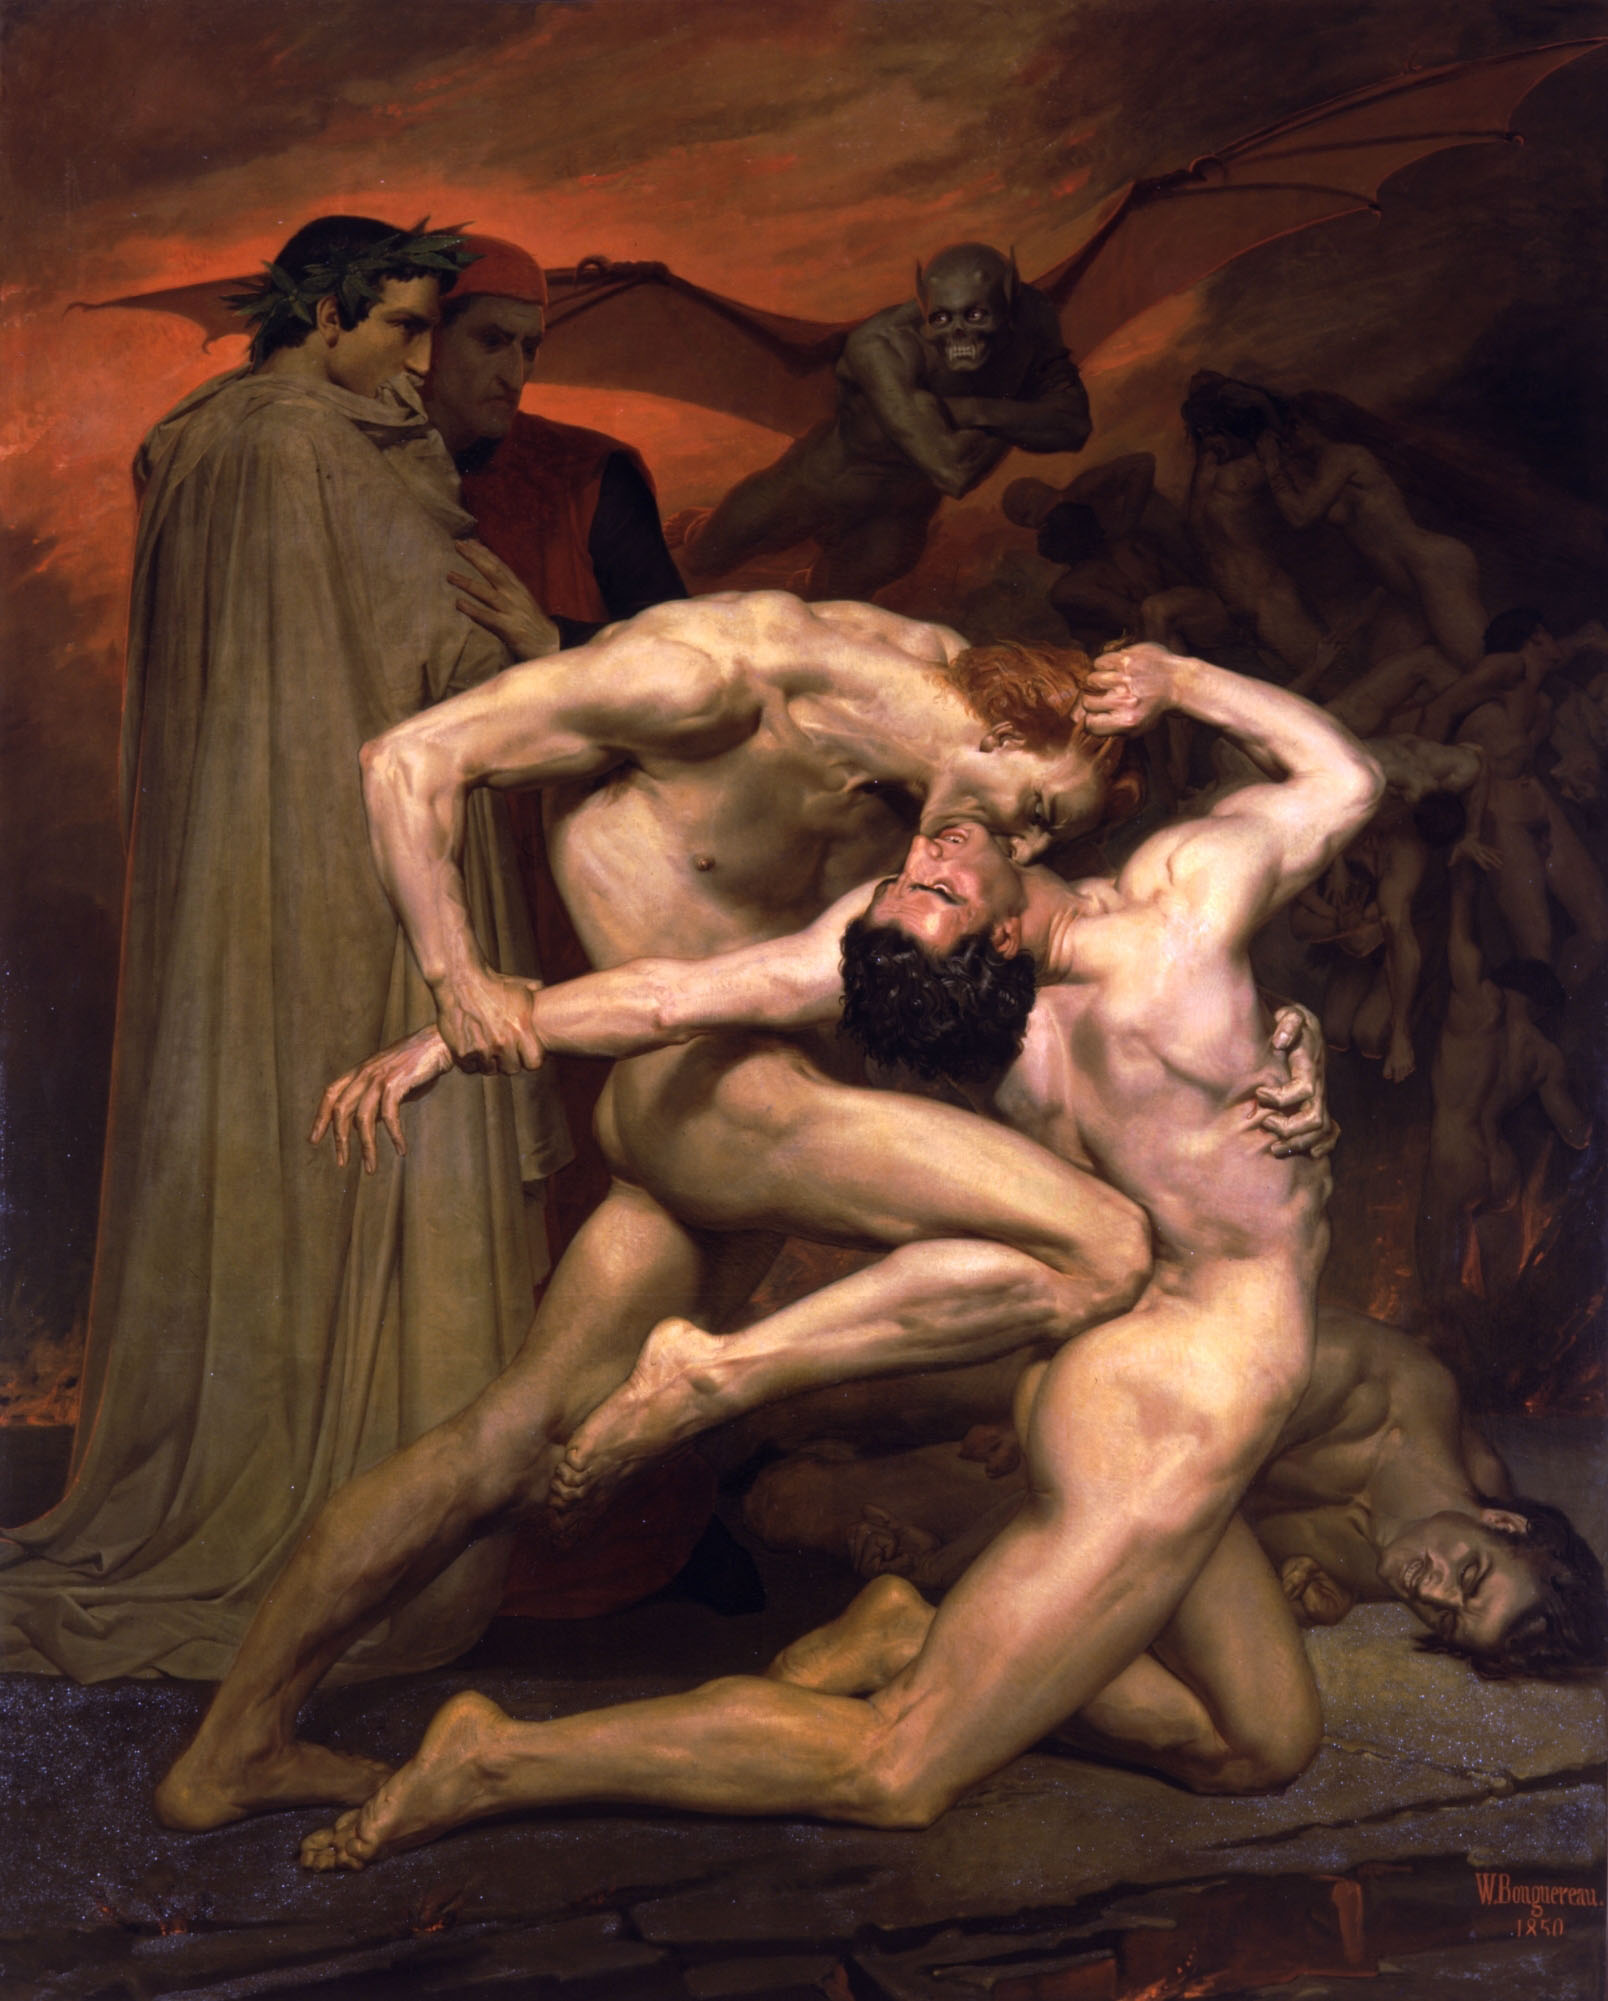 http://upload.wikimedia.org/wikipedia/commons/7/70/William-Adolphe_Bouguereau_%281825-1905%29_-_Dante_And_Virgil_In_Hell_%281850%29.jpg